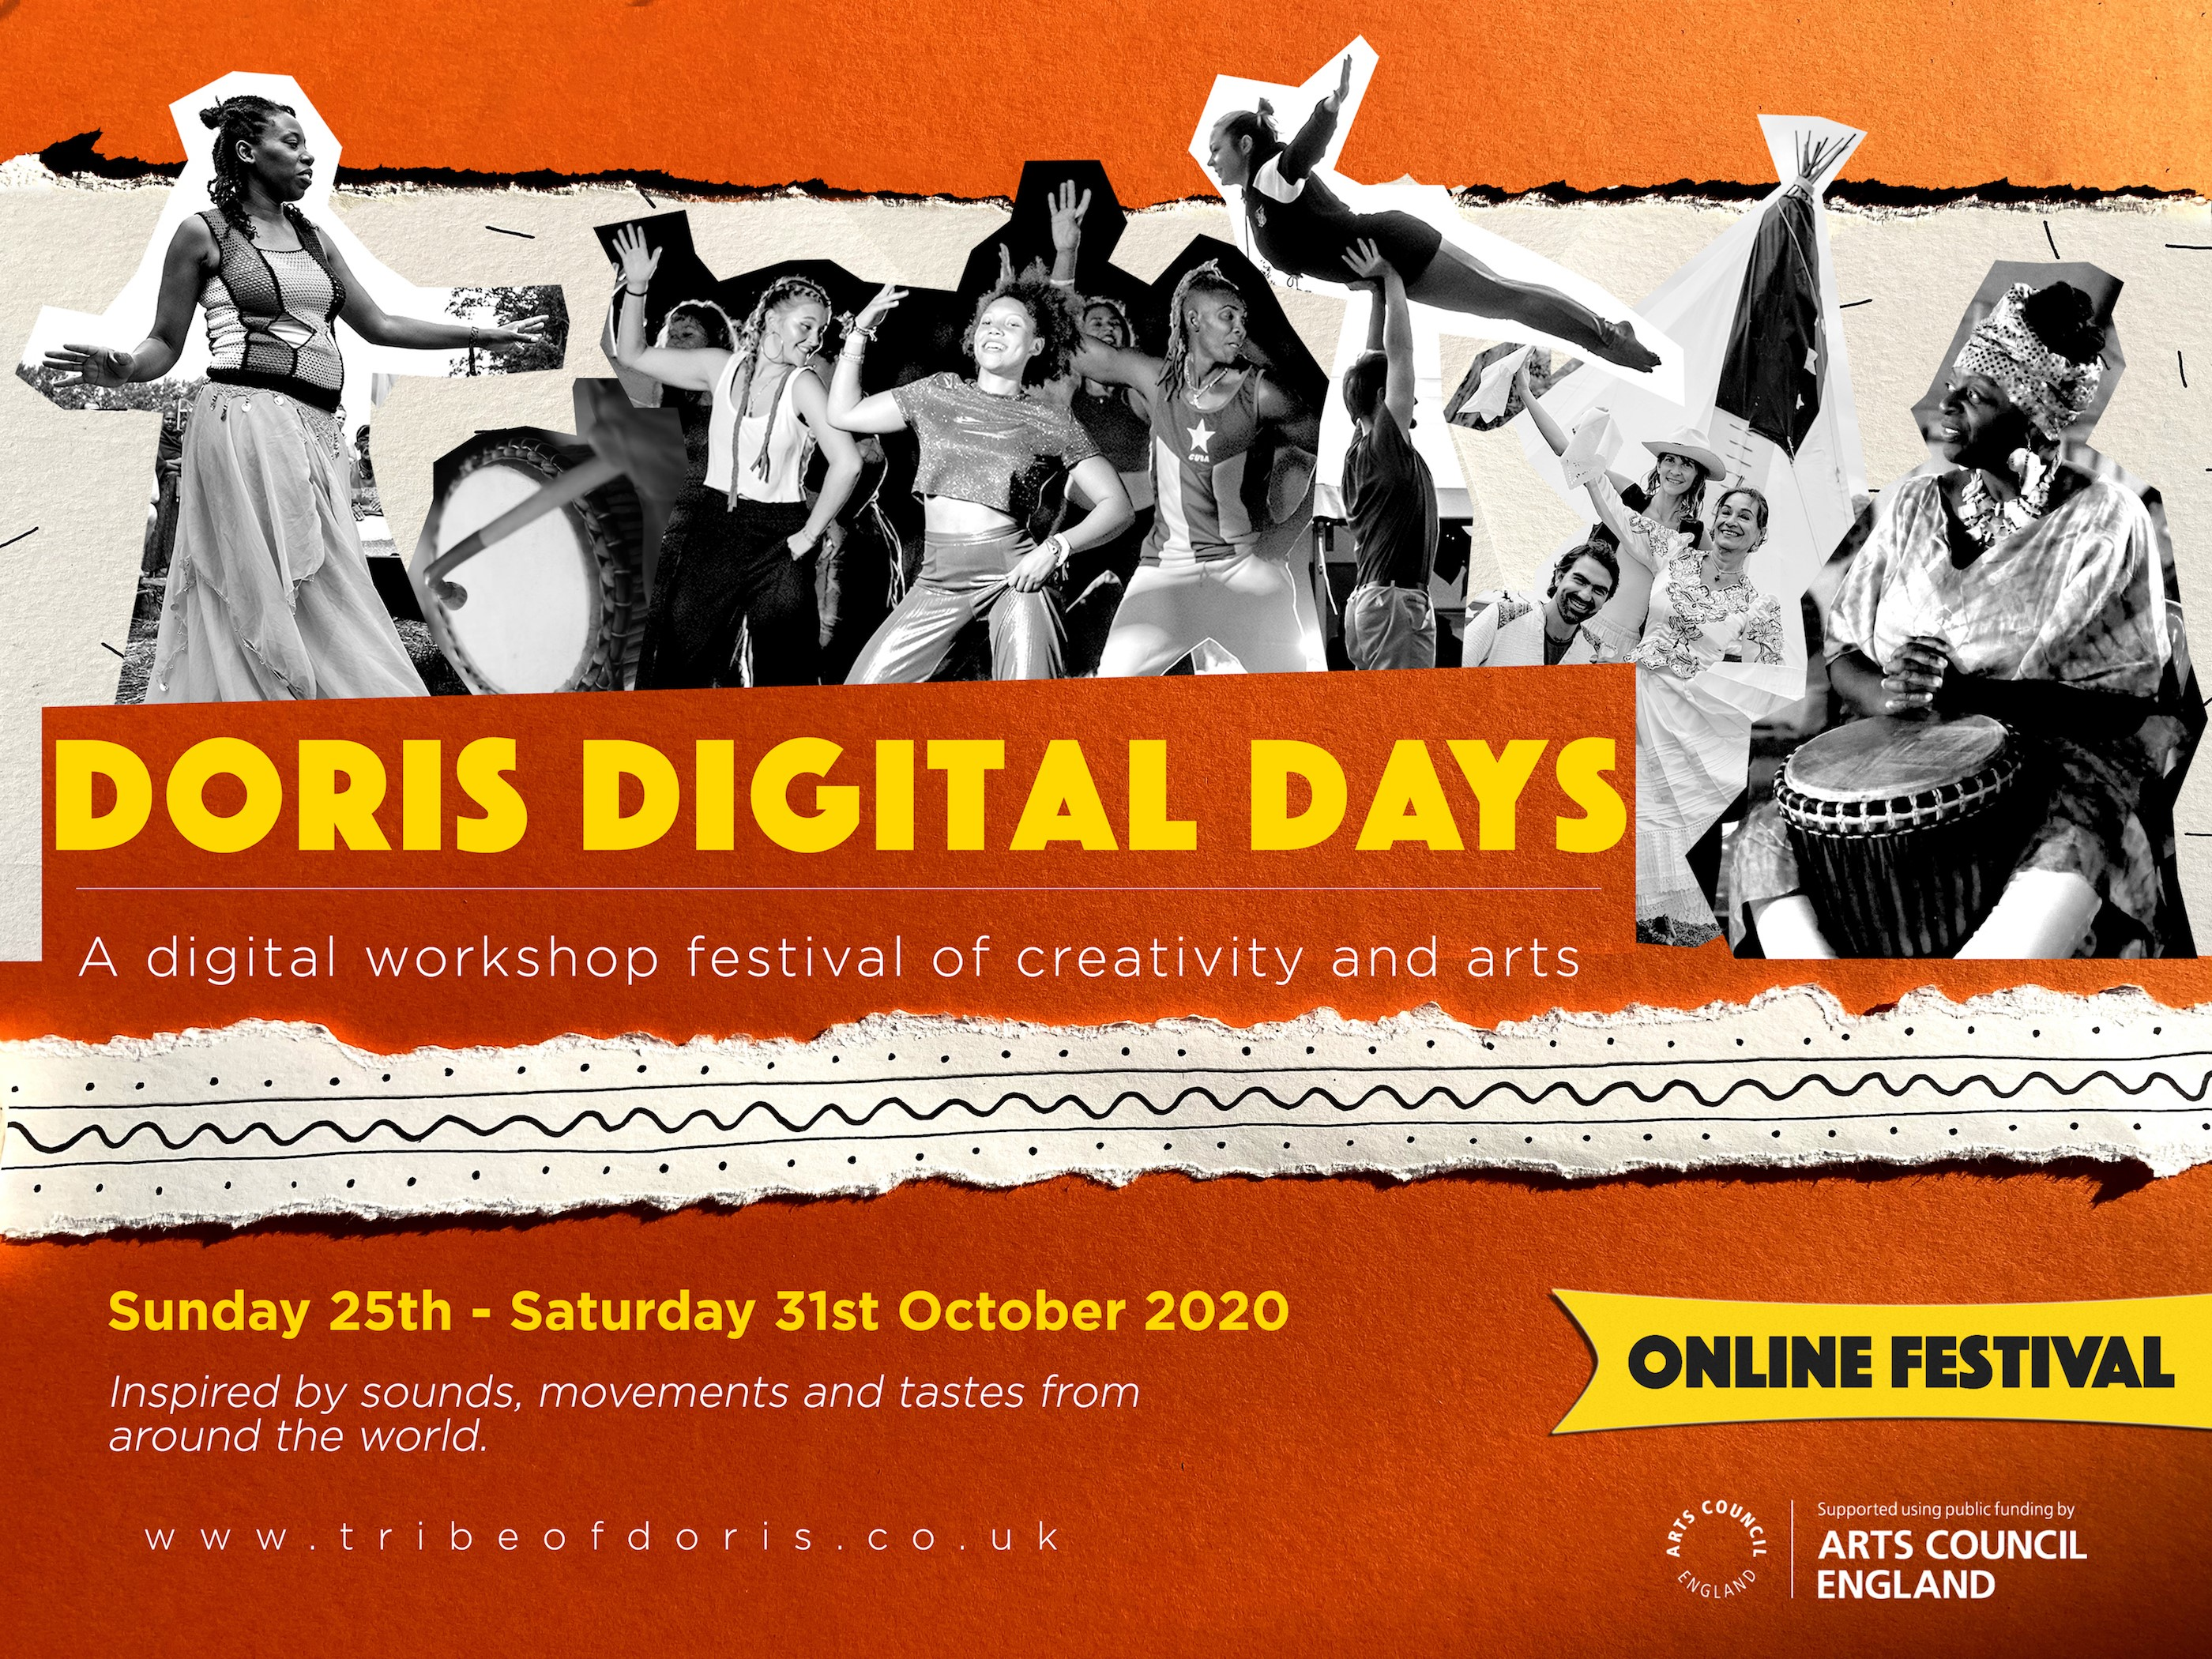 Doris Digital Days: Online Workshop Festival